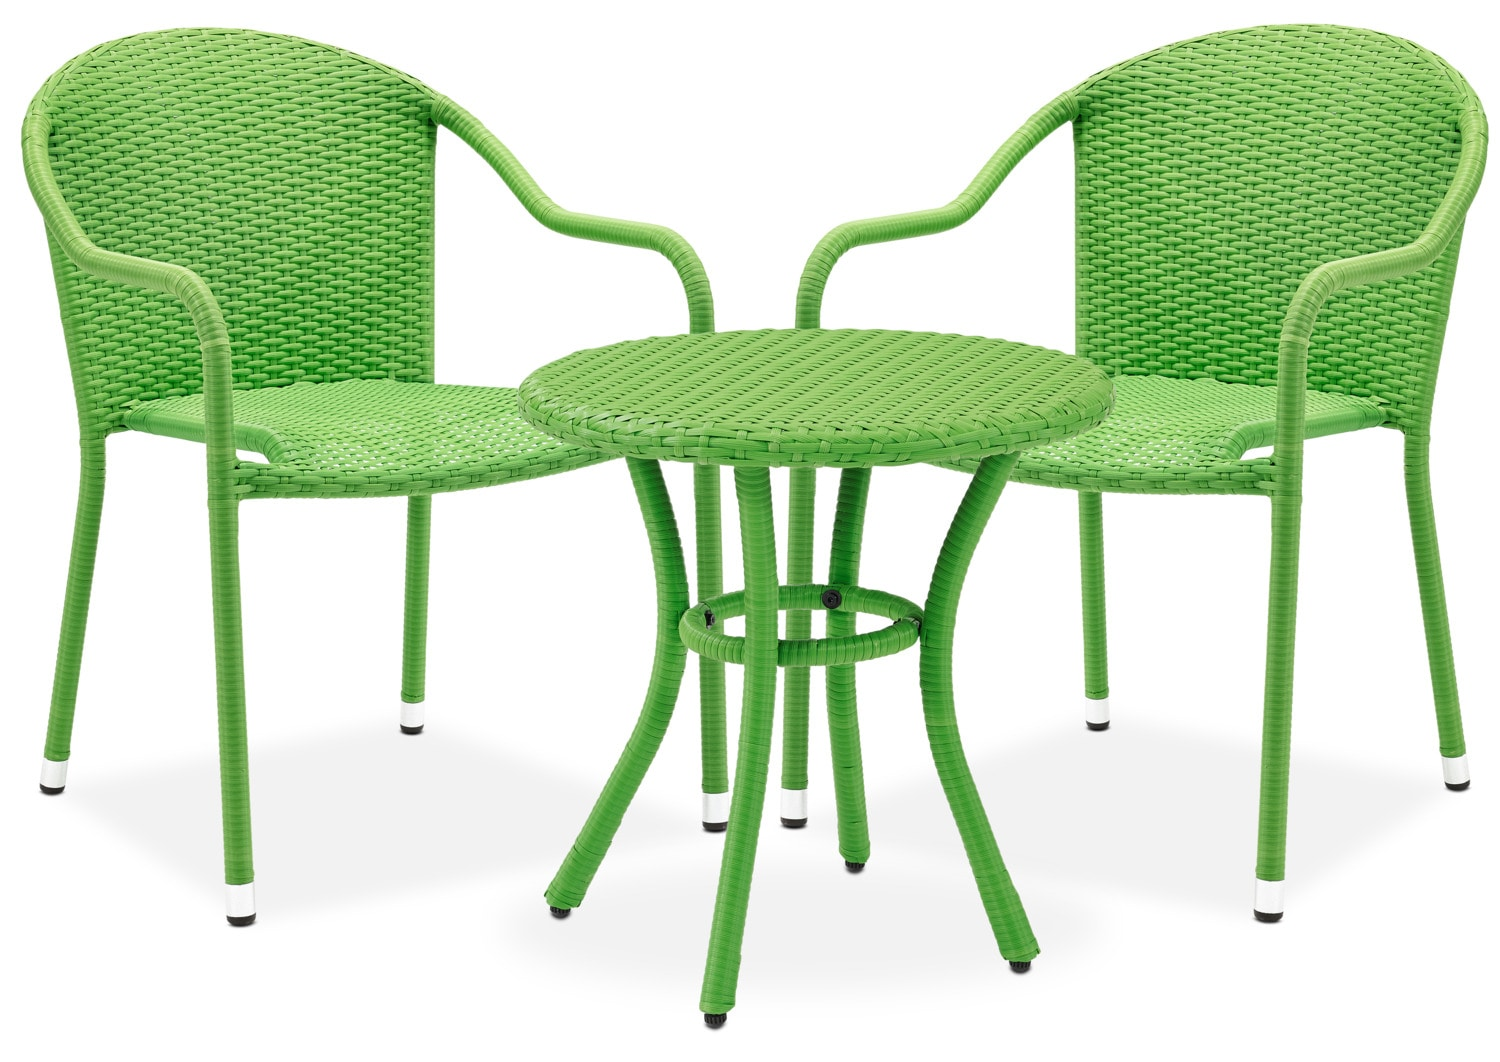 Aldo Outdoor Café Table And 2 Arm Chairs   Green